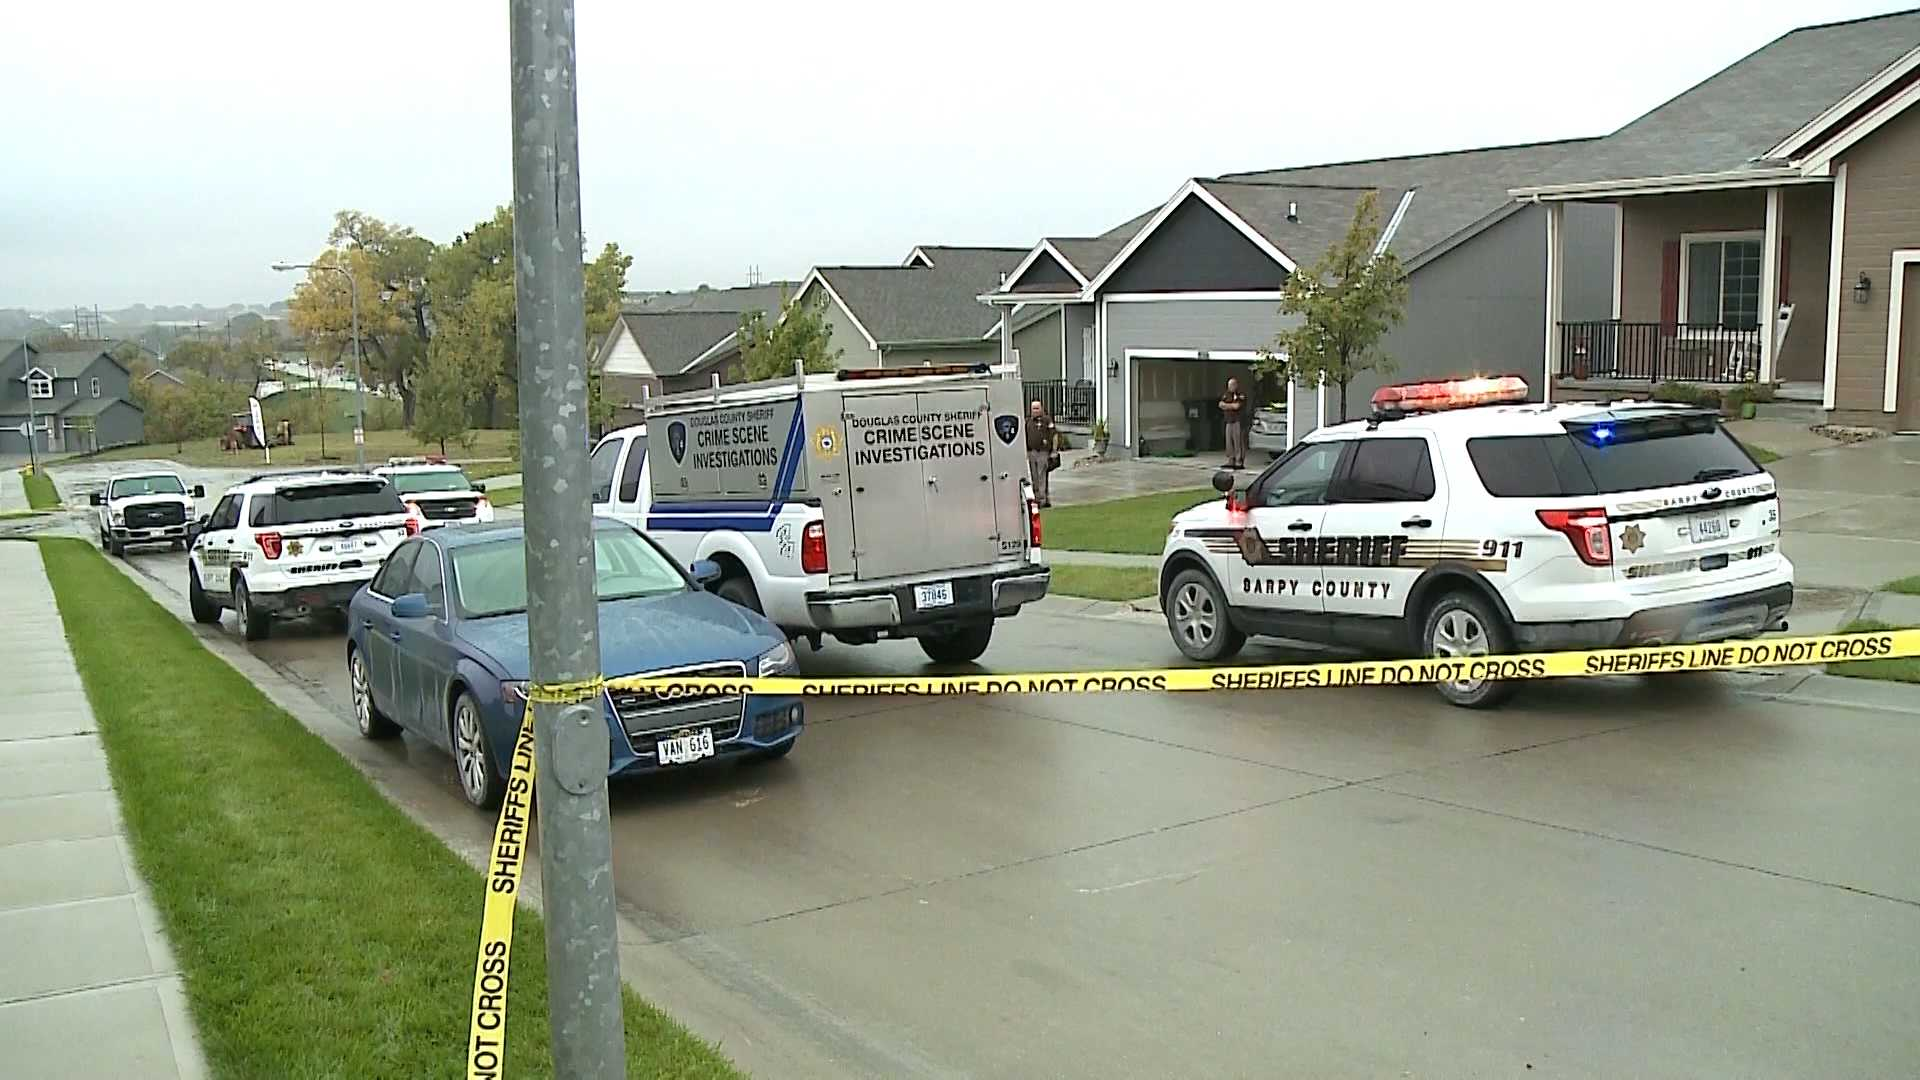 No charges in fatal Sarpy County shooting - Omaha news